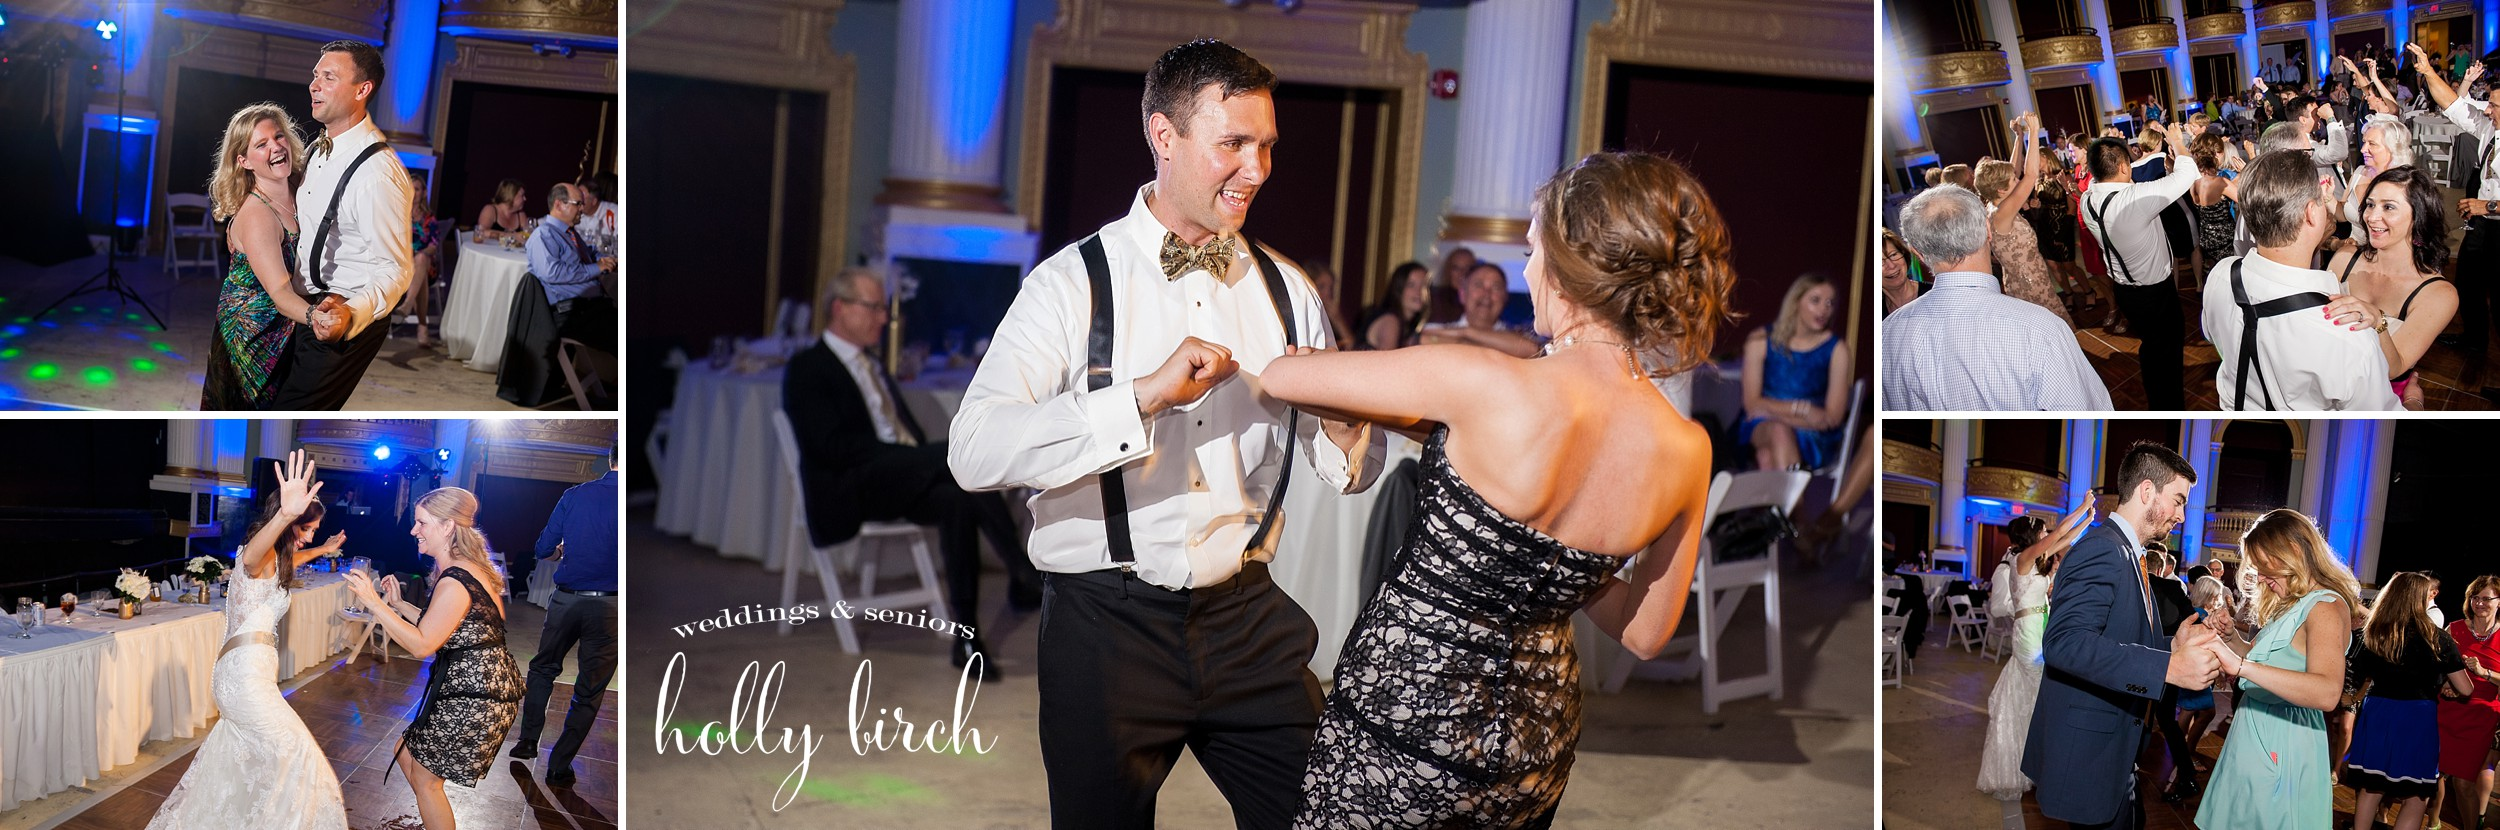 Orpheum wedding dancing